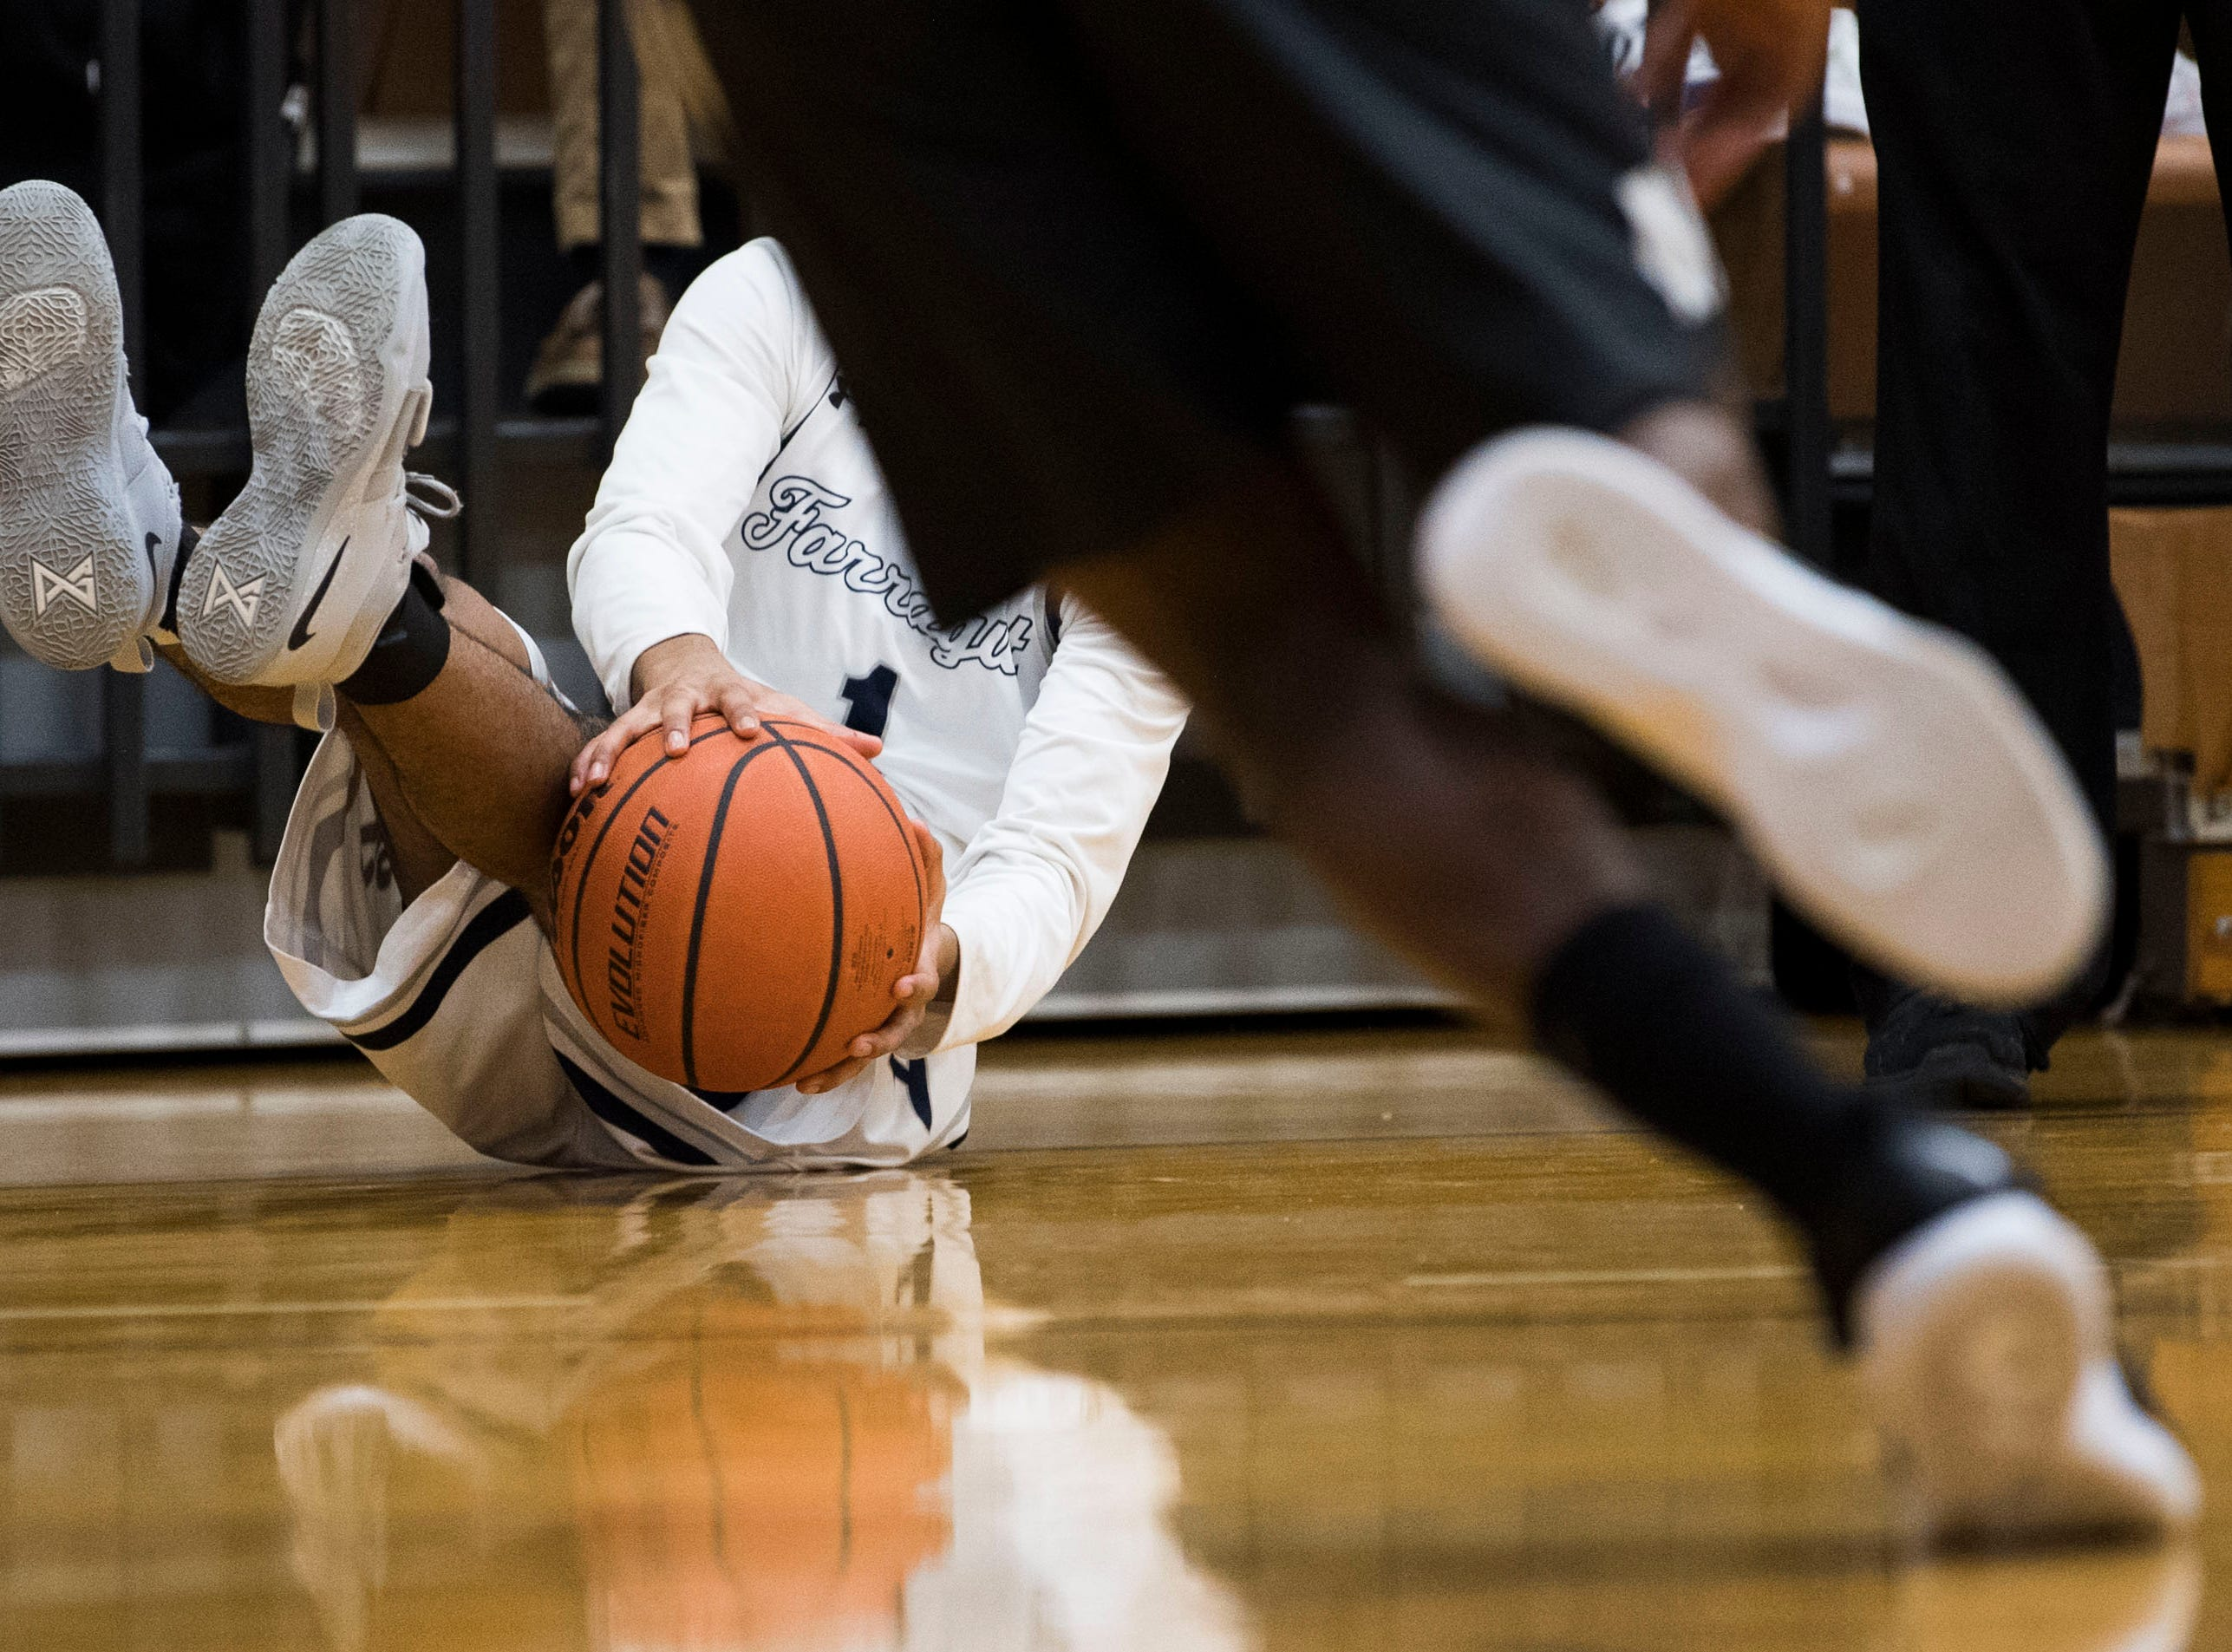 Farragut's Saish Mallory (1) slides on the ground with the ball during a high school basketball game between Maryville and Farragut at Farragut, Friday, Jan. 11, 2019.